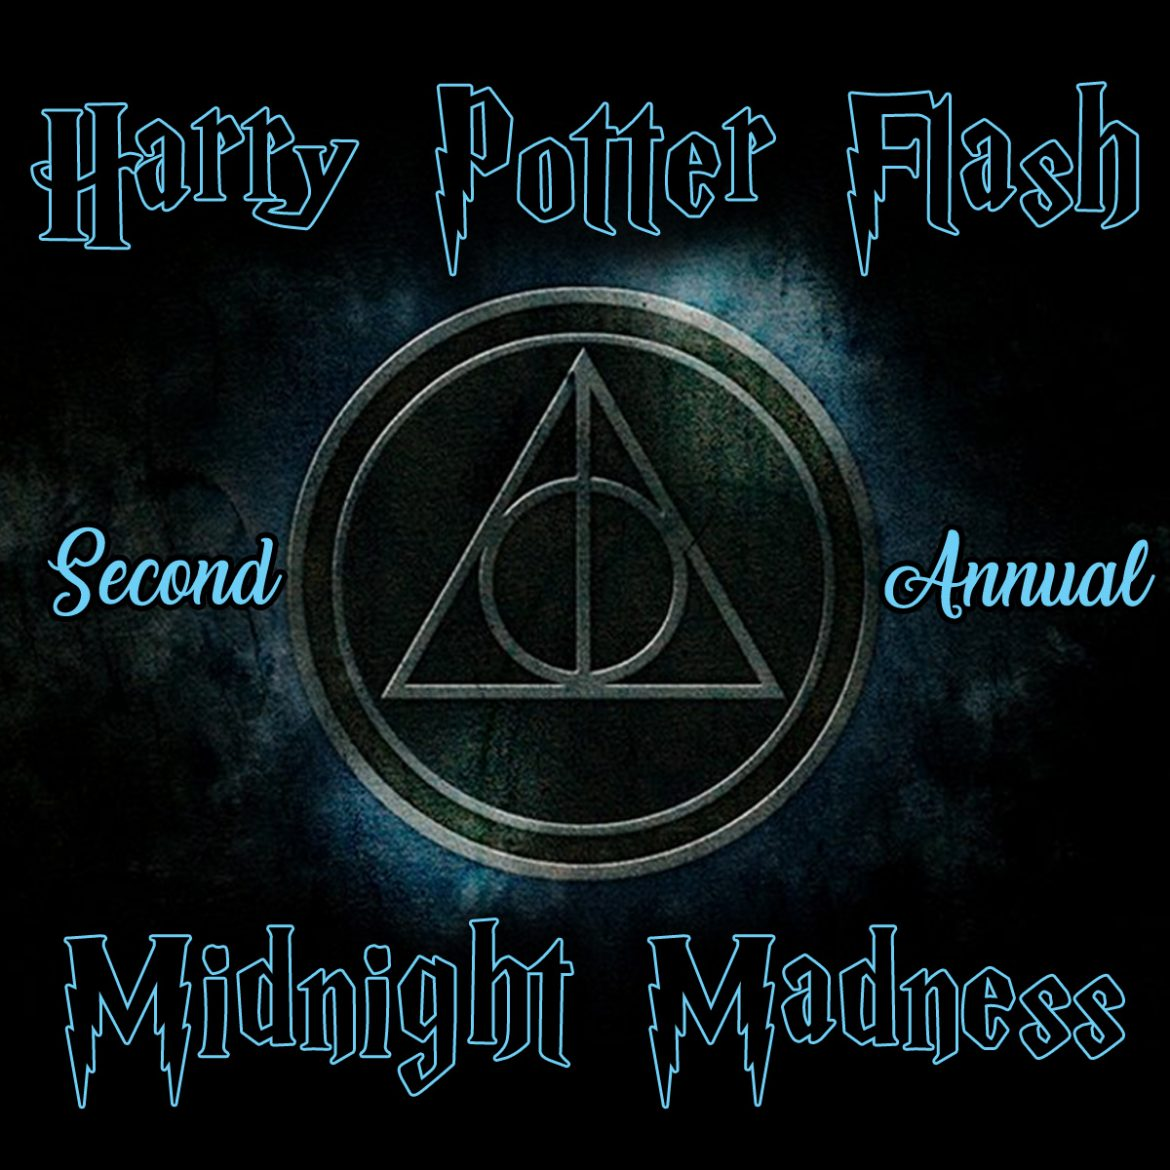 Harry Potter 2nd Annual Midnight Madness